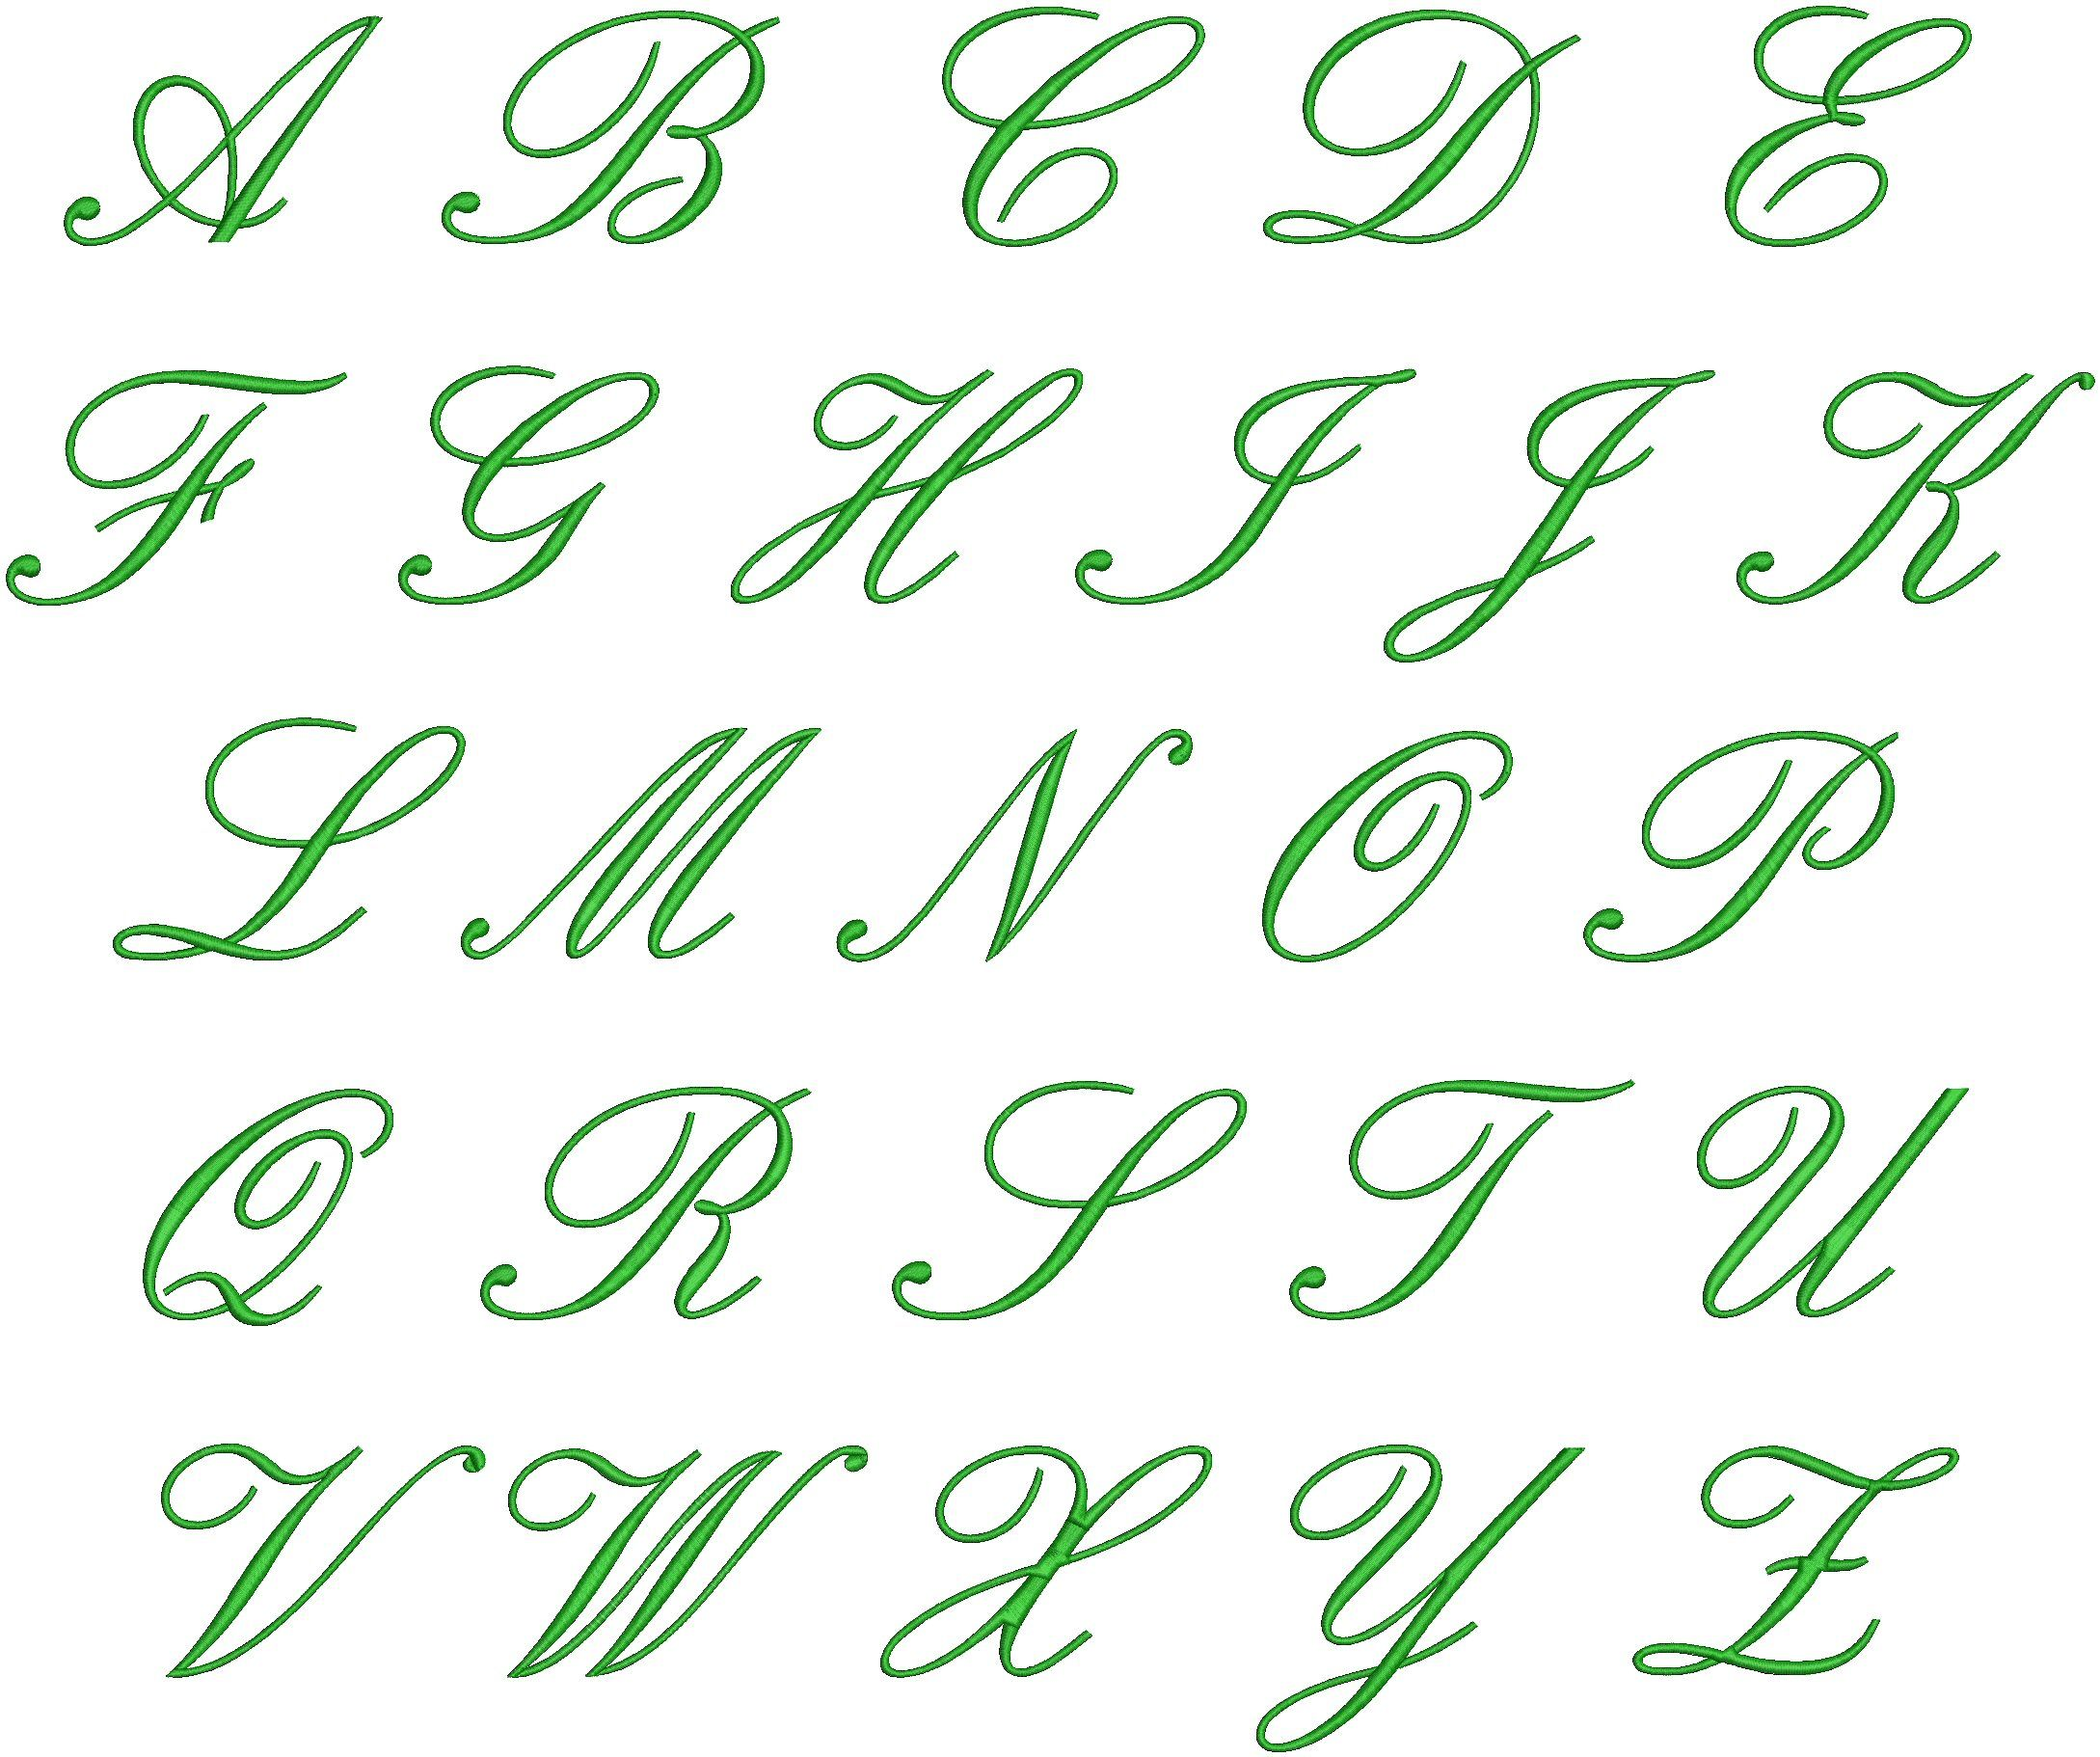 Worksheet English Alphabets Cursive Writing 1000 images about lettering on pinterest handwriting calligraphy and lettering